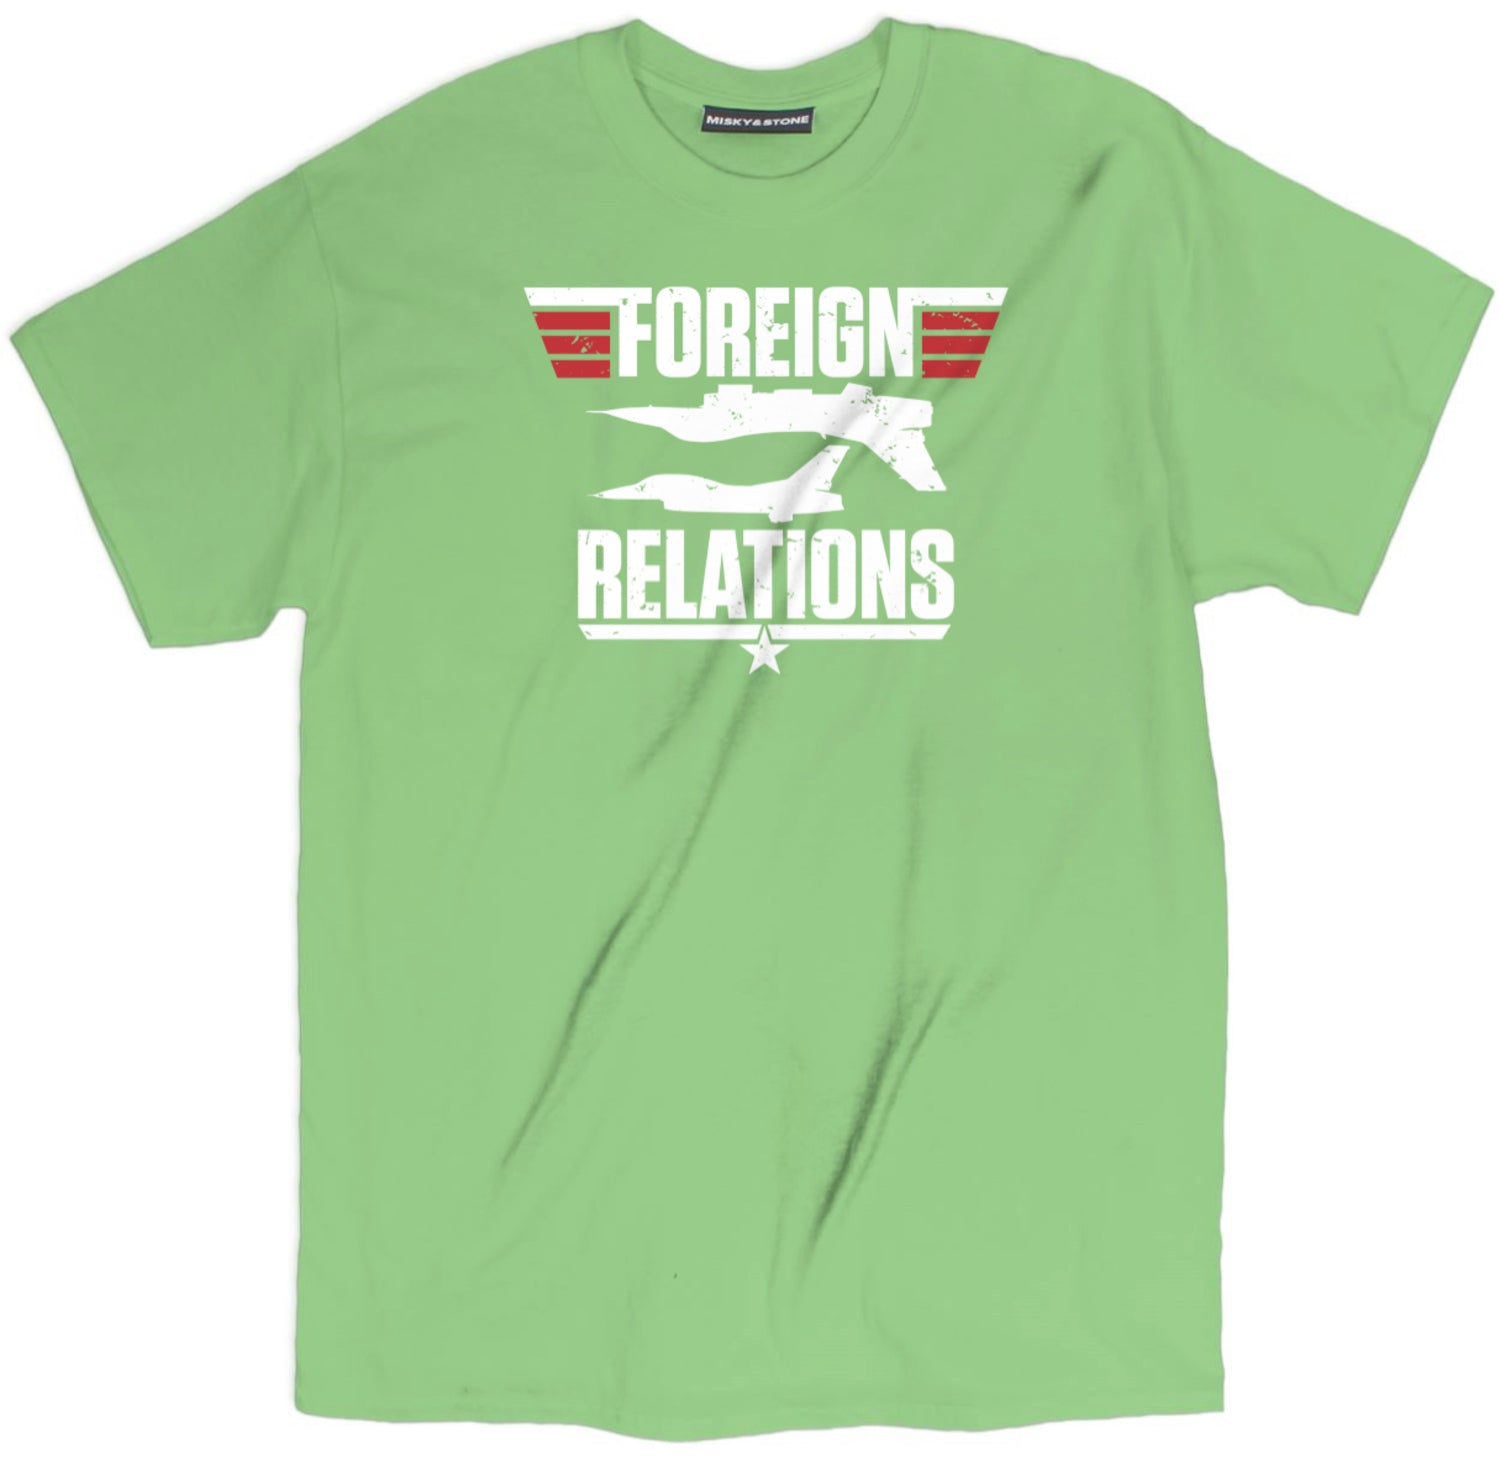 Foreign Relations Tee